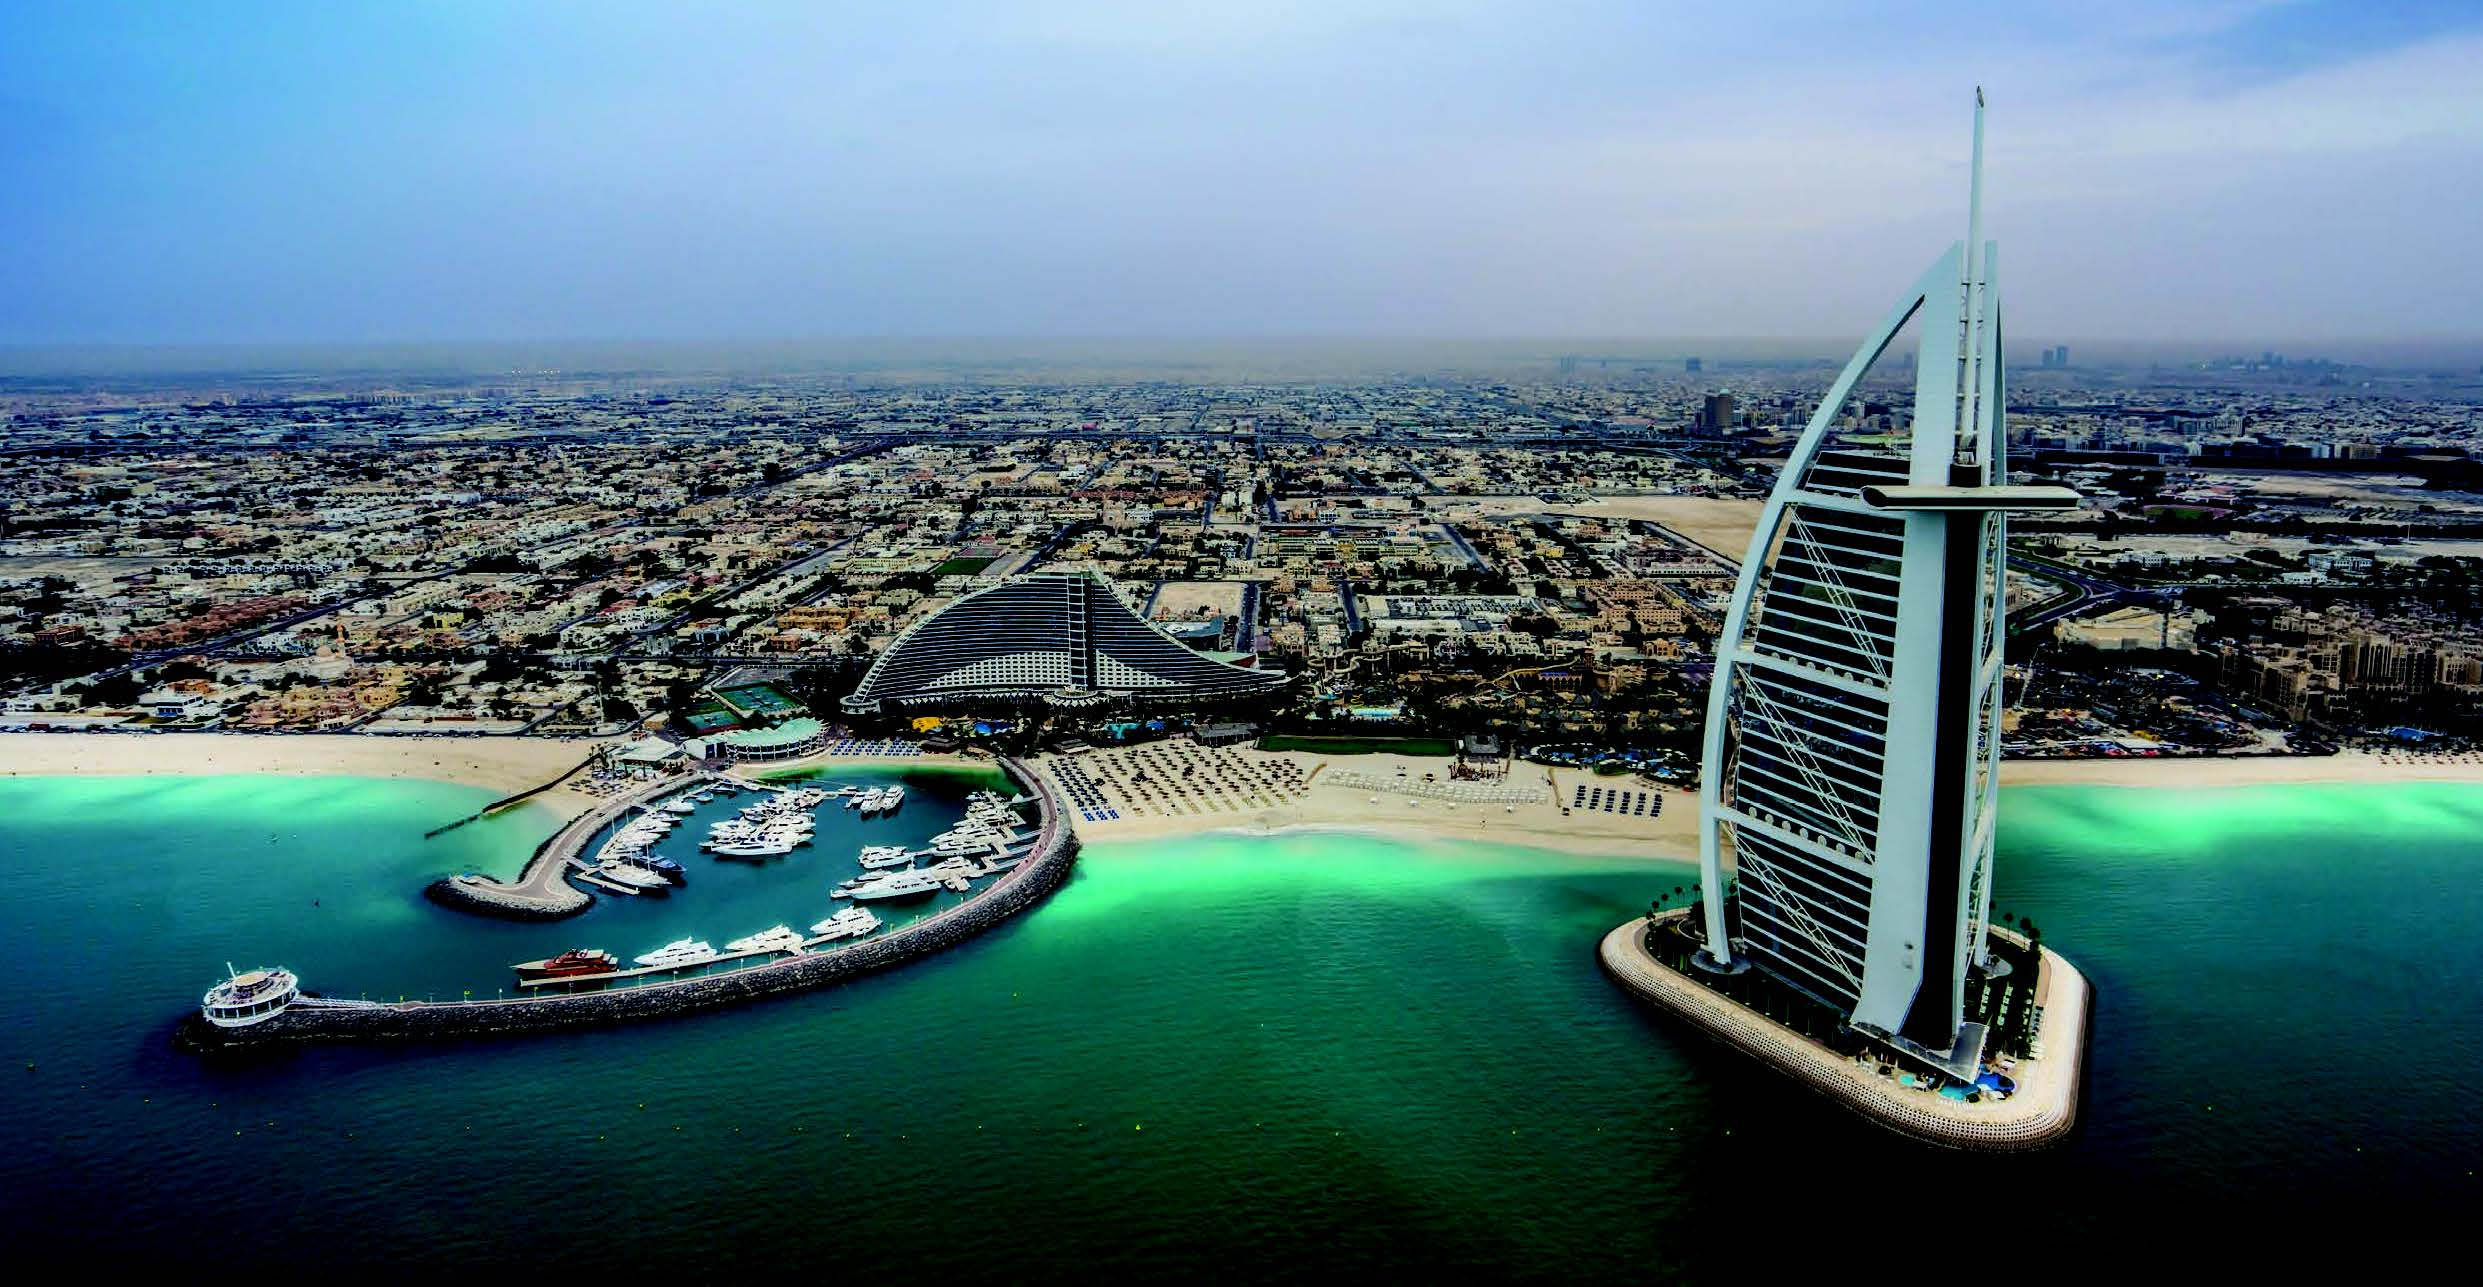 Burj Al Arab young consultancy